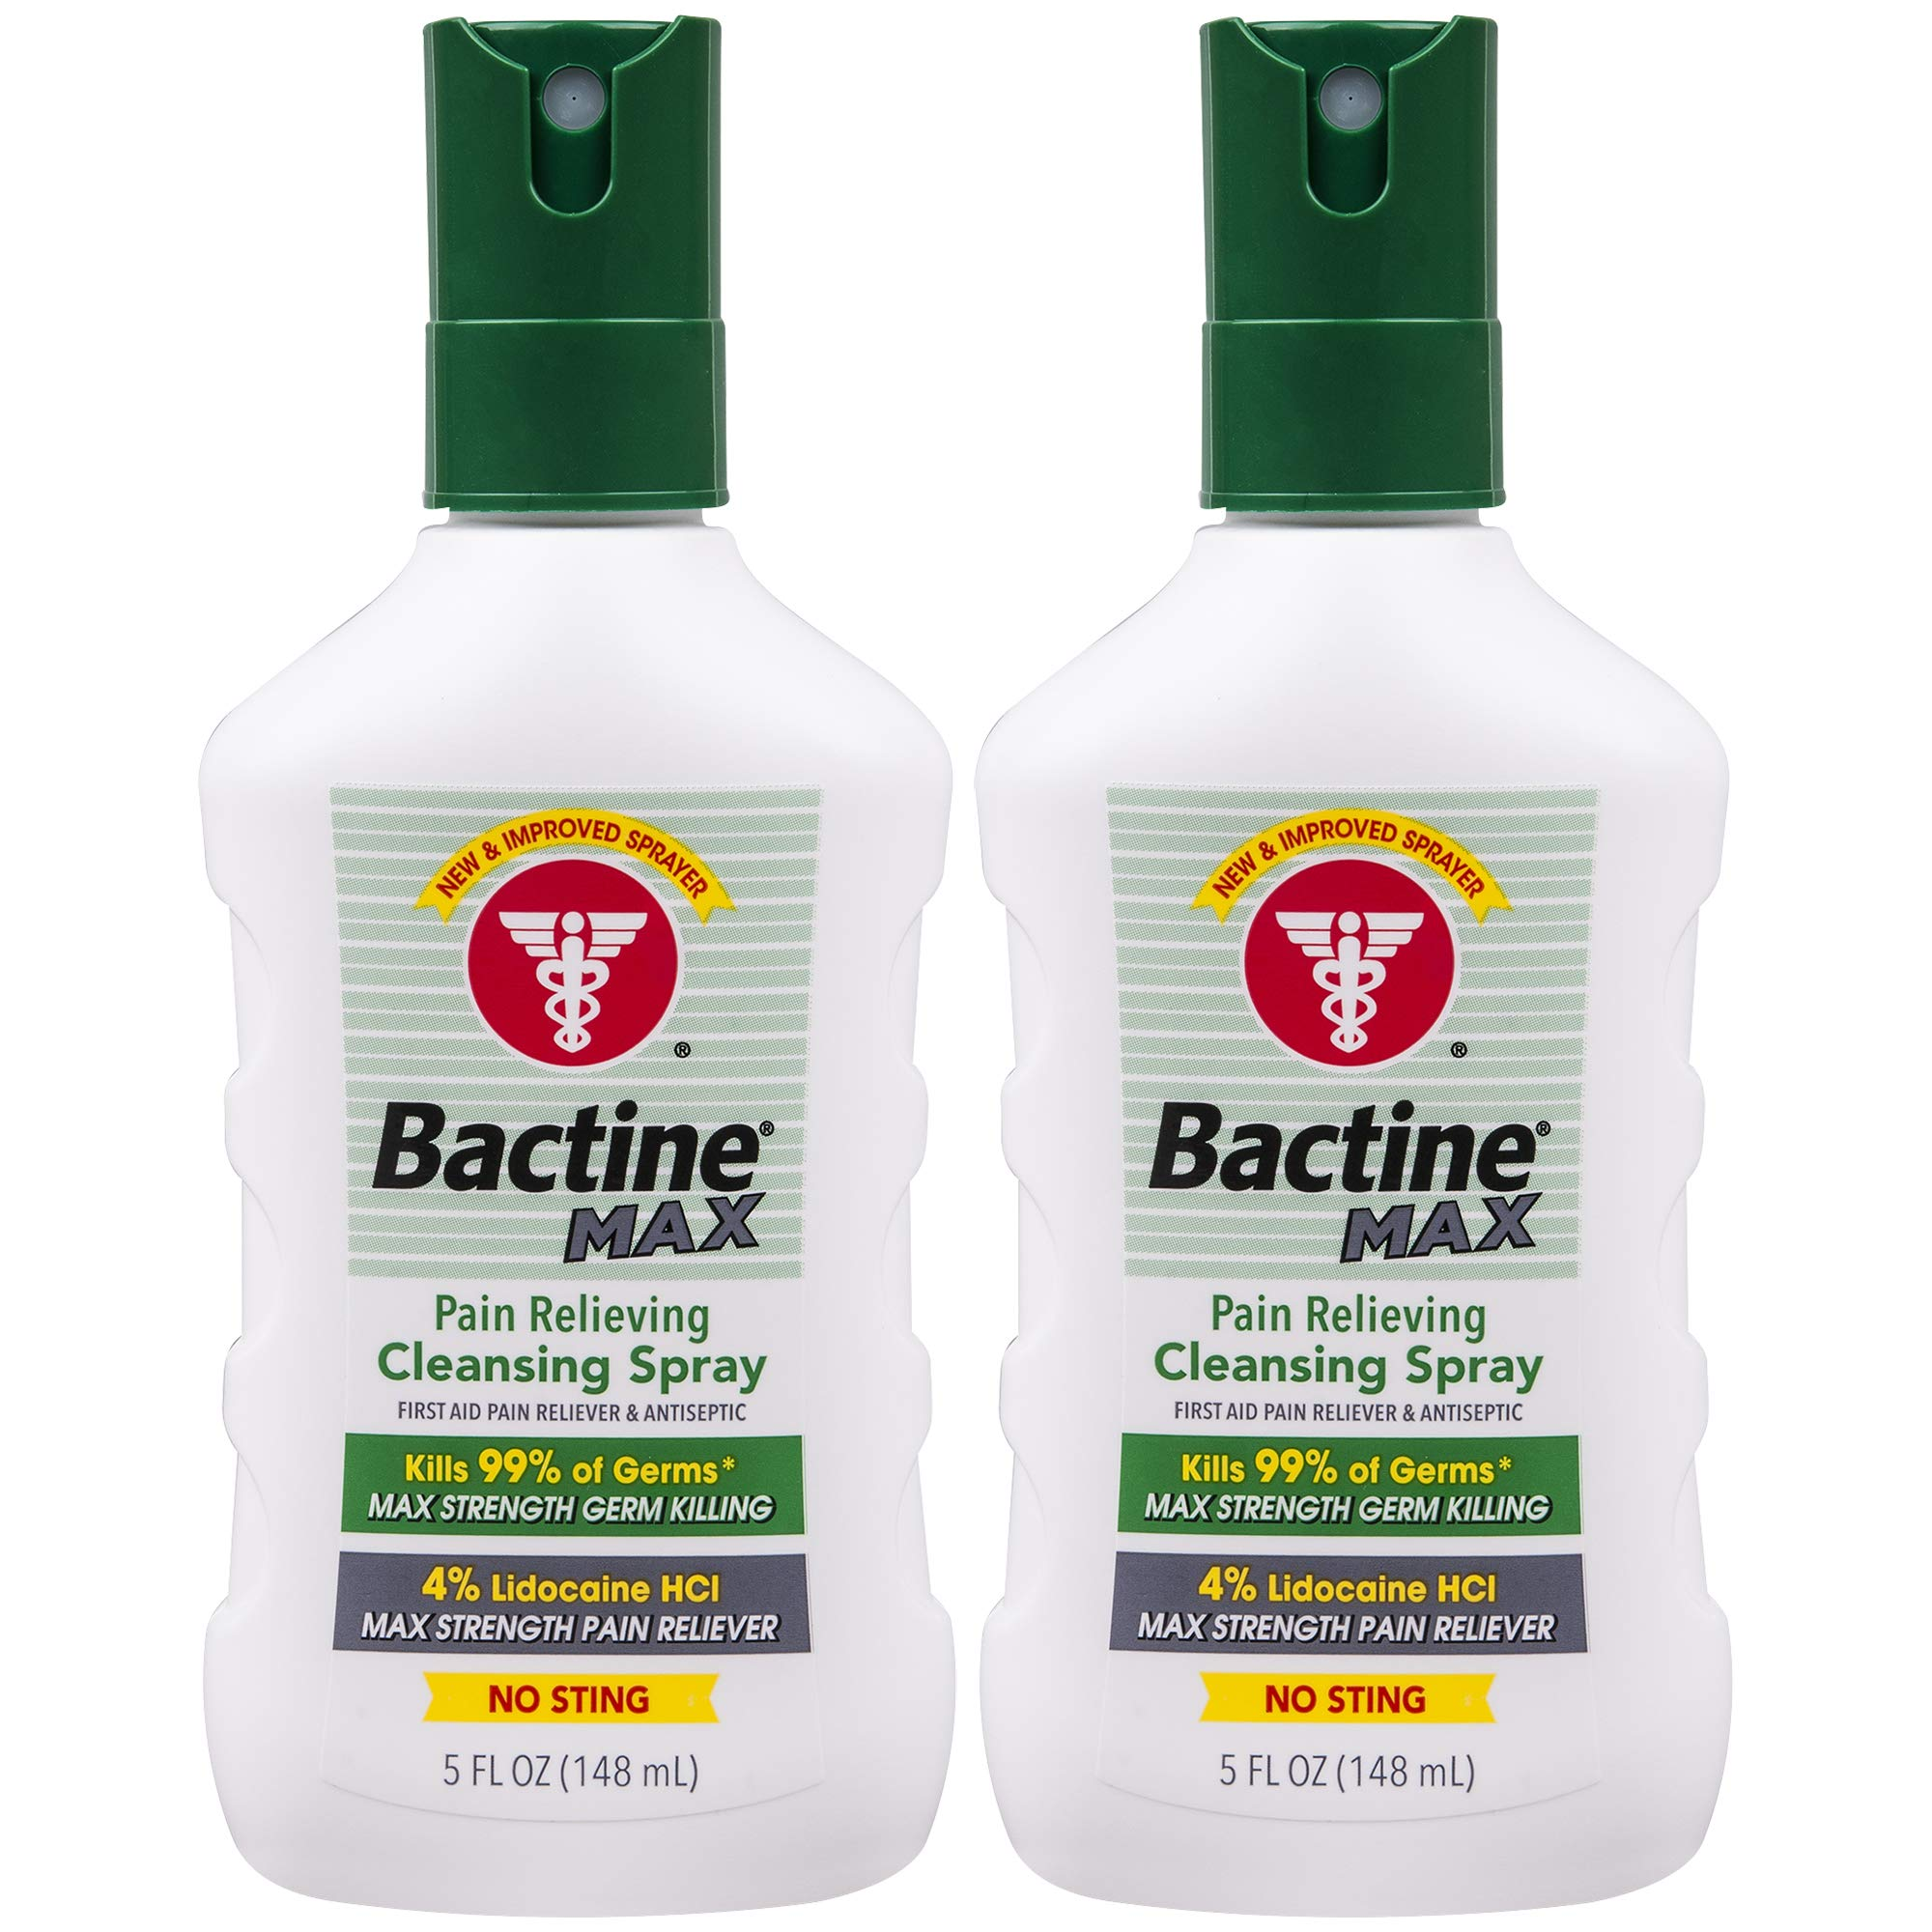 Bactine Max Pain Relieving Cleansing Spray, 5 Oz, 2Count by Bactine